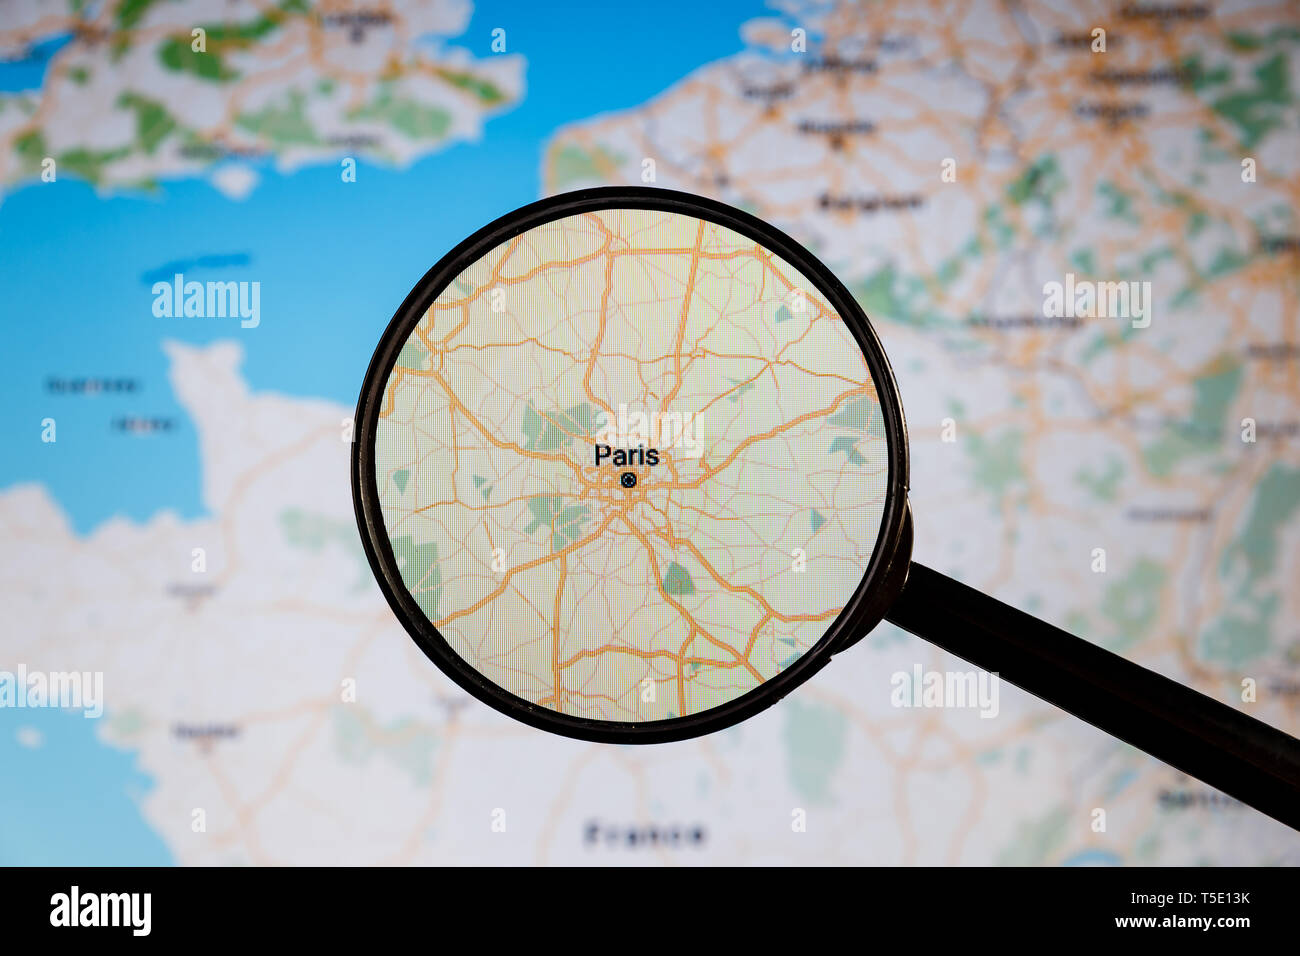 Paris, France. Political map. City visualization illustrative concept on display screen through magnifying glass. - Stock Image